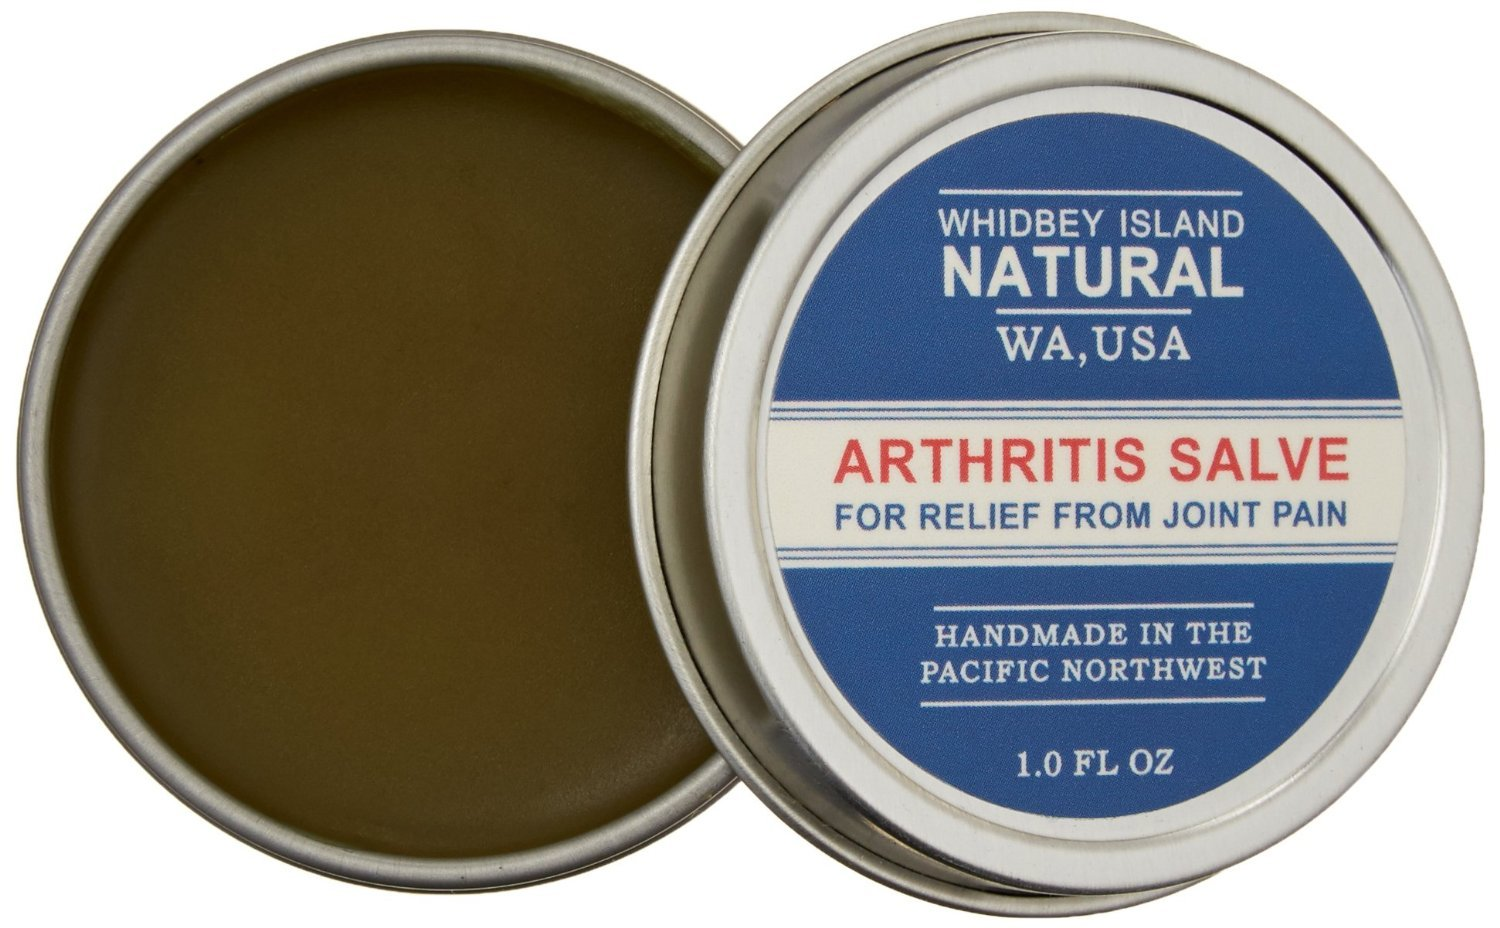 Arthritis Salve by Whidbey Island Natural | for immediate Pain Relief from deep, Aching Joints and Stiffness. All-Natural. 1 oz - TIN (2 Pack)